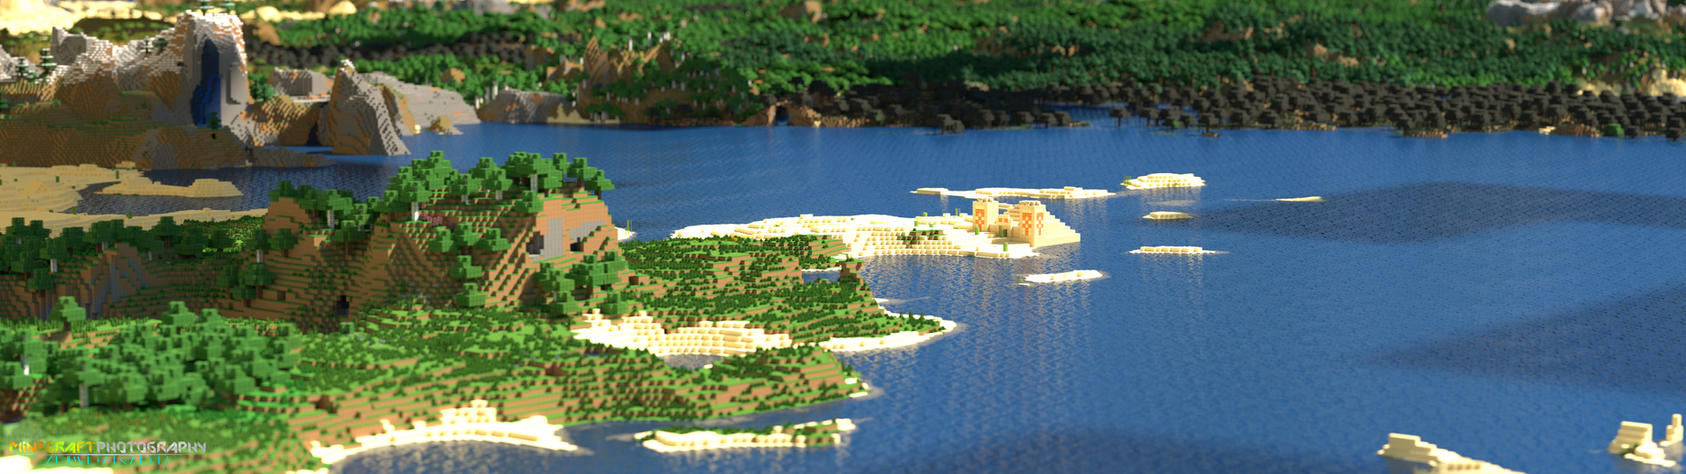 Minecraft | Temple Peninsula by MinecraftPhotography